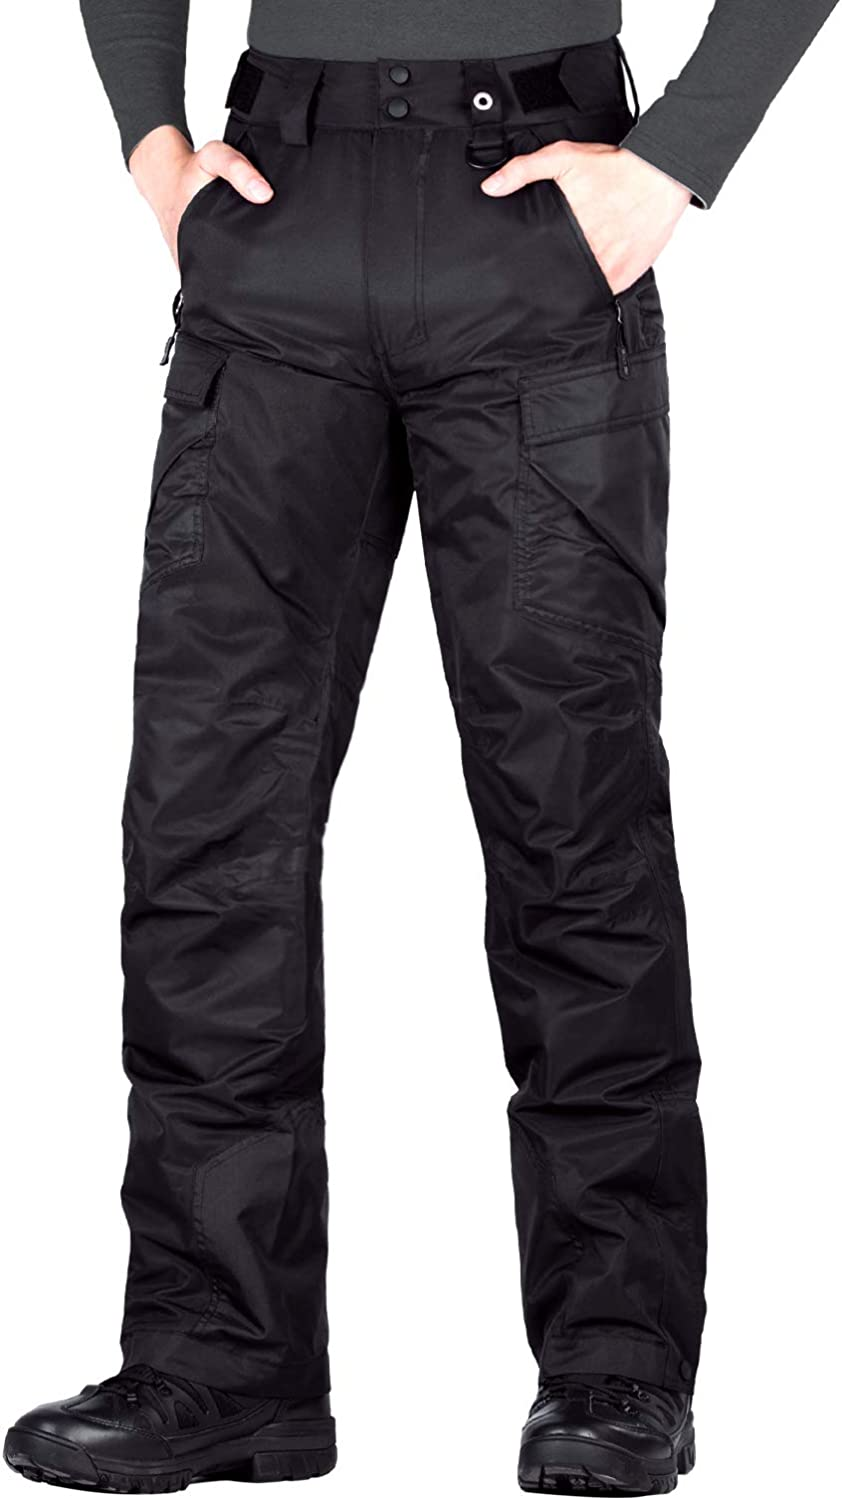 FREE SOLDIER Men's Waterproof Snow Insulated Pants Winter Skiing Snowboarding Pants with Zipper Pockets